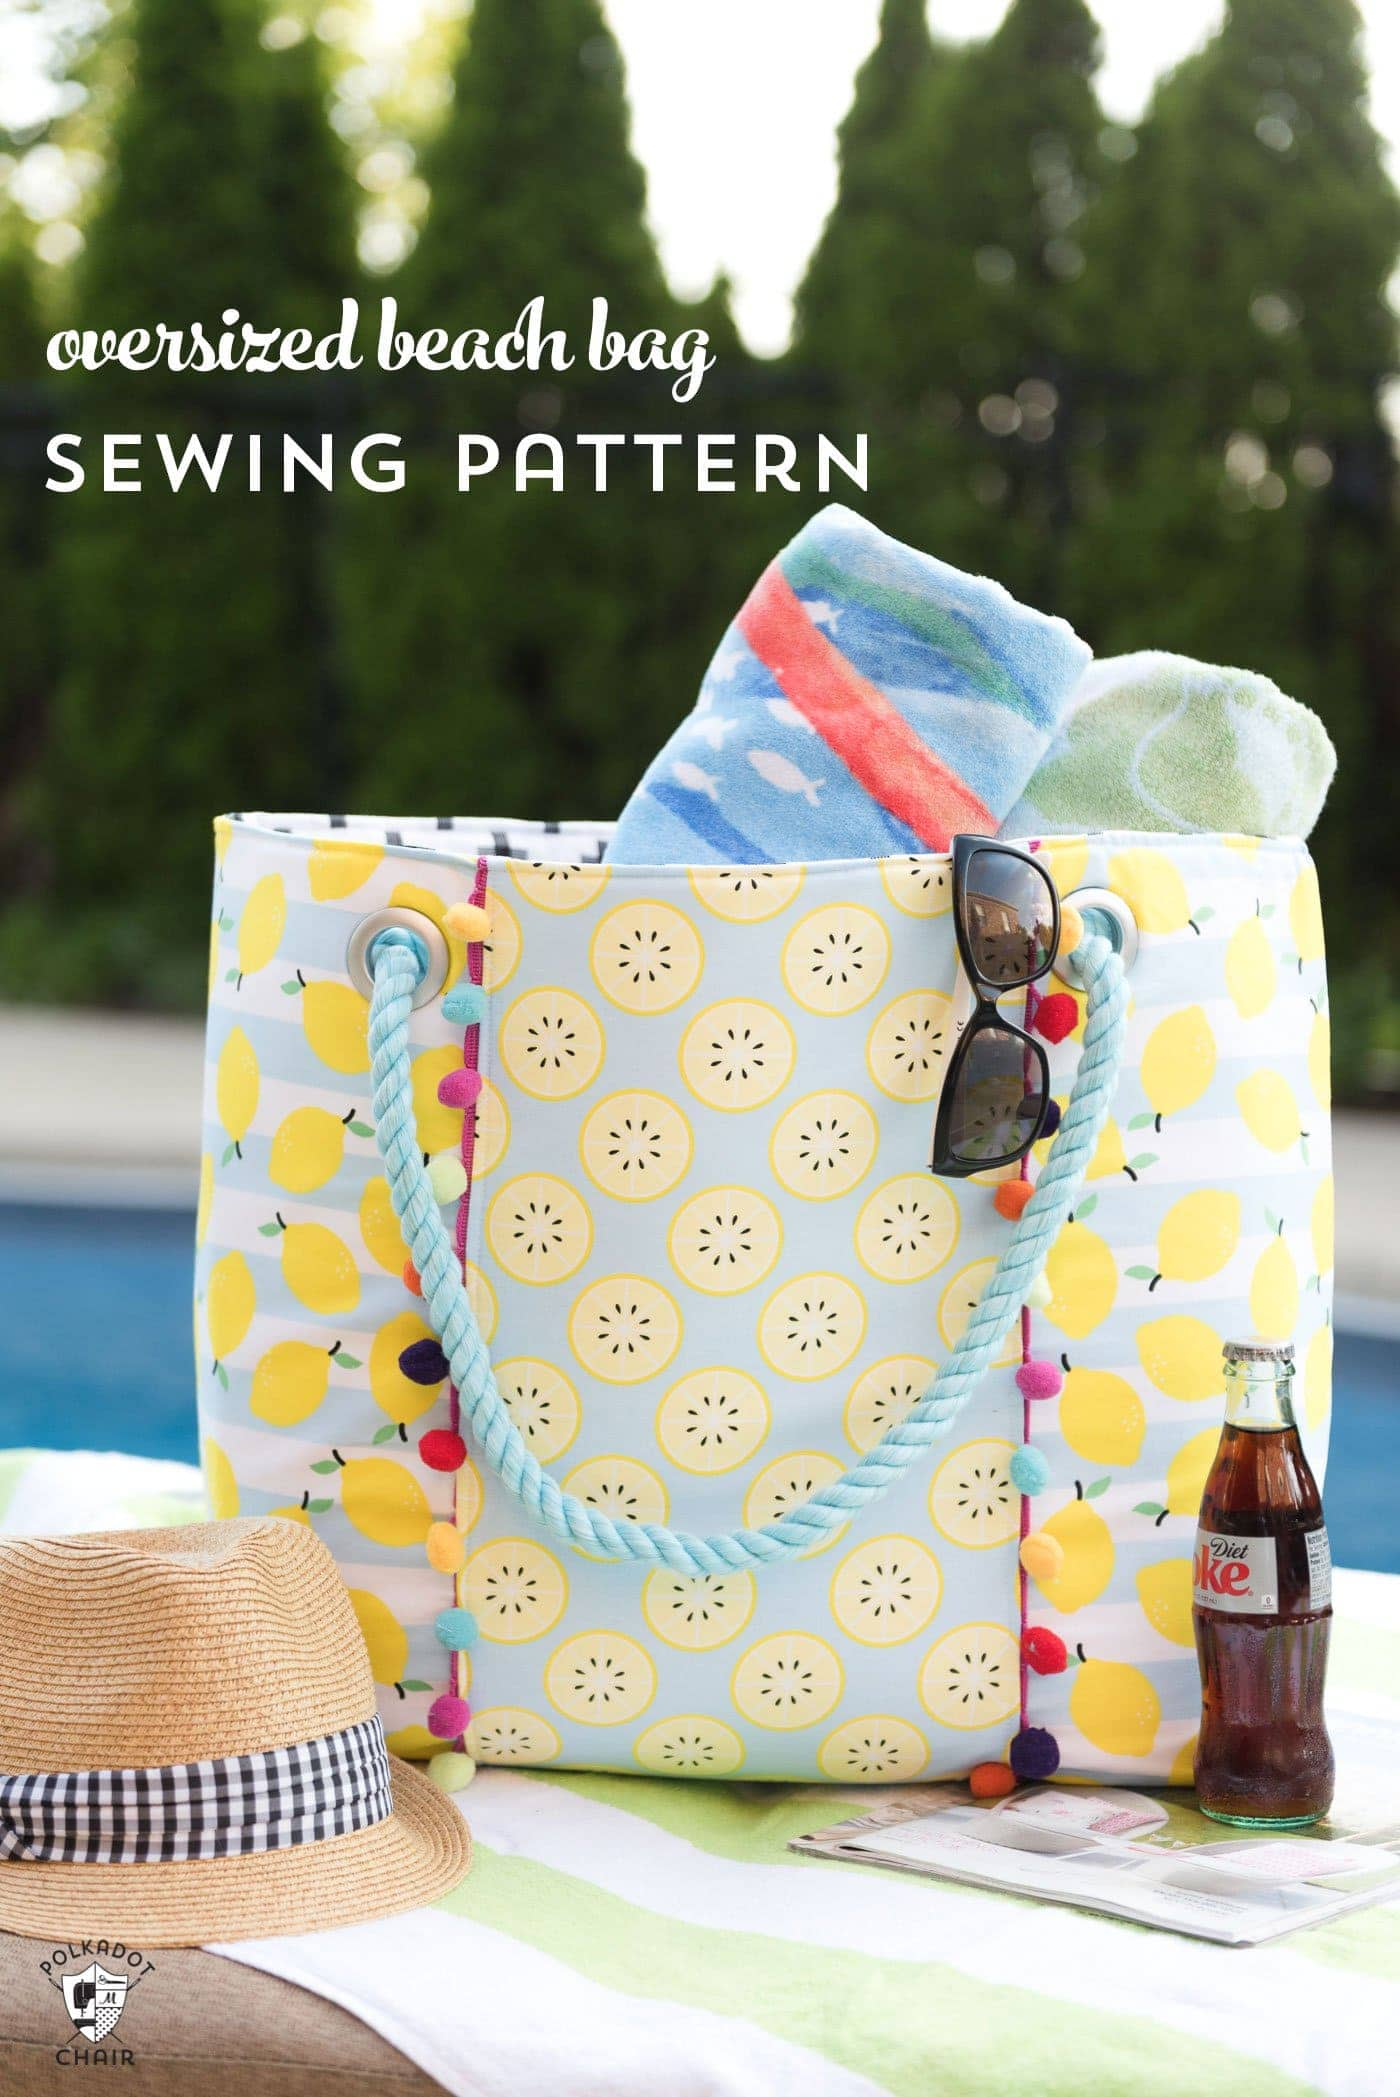 Top 10 Sewing Projects of 2017  The Polka Dot Chair